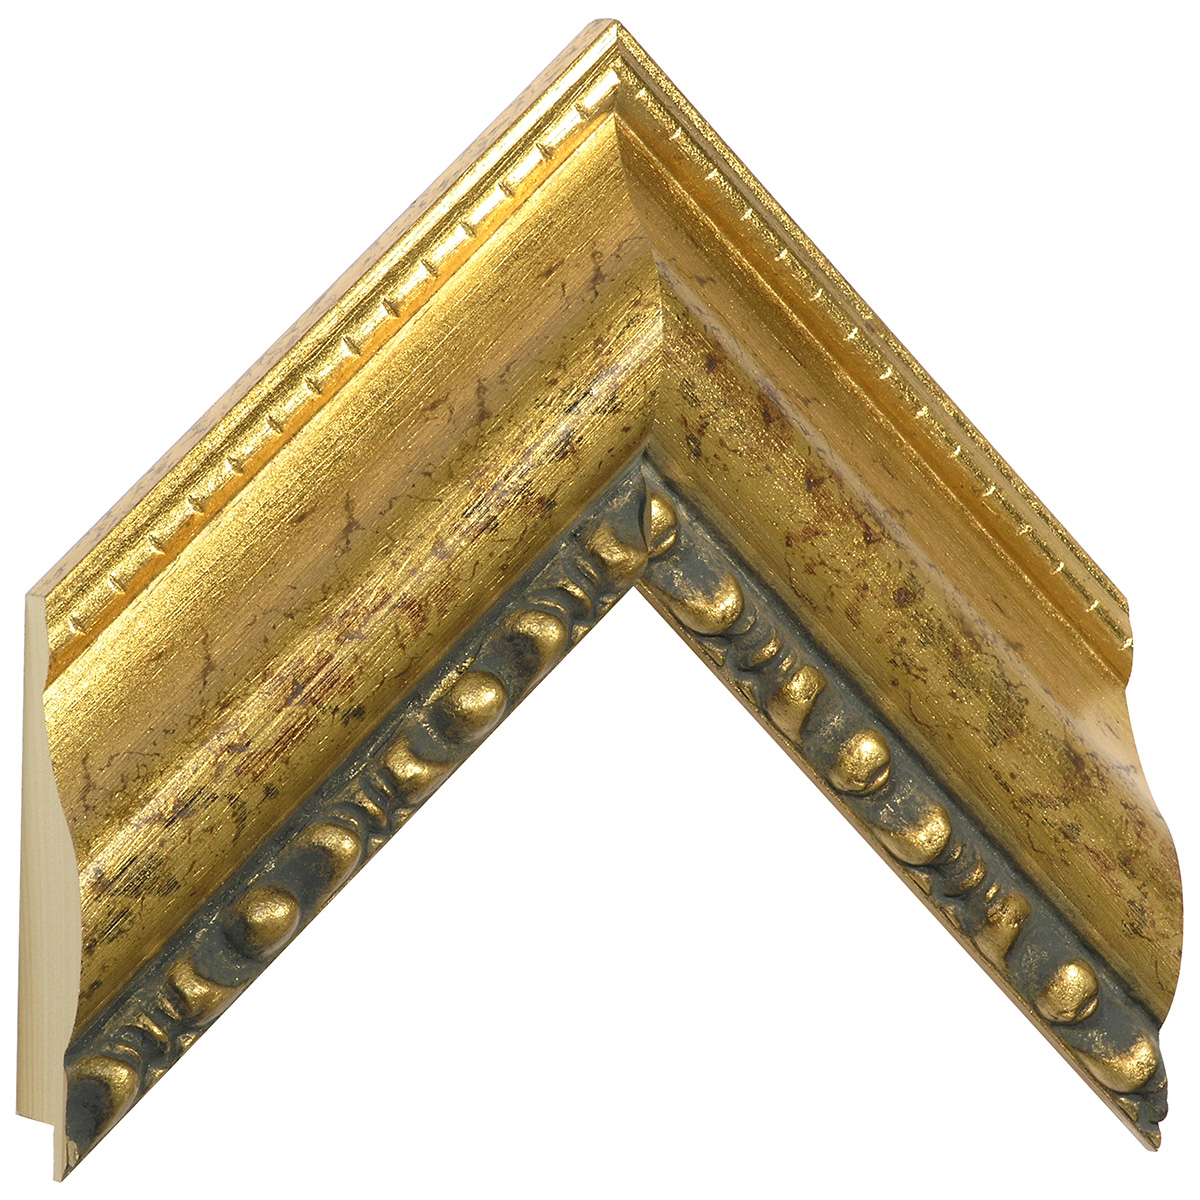 Moulding ayous, width 75mm, height 40, gold, beaded edge